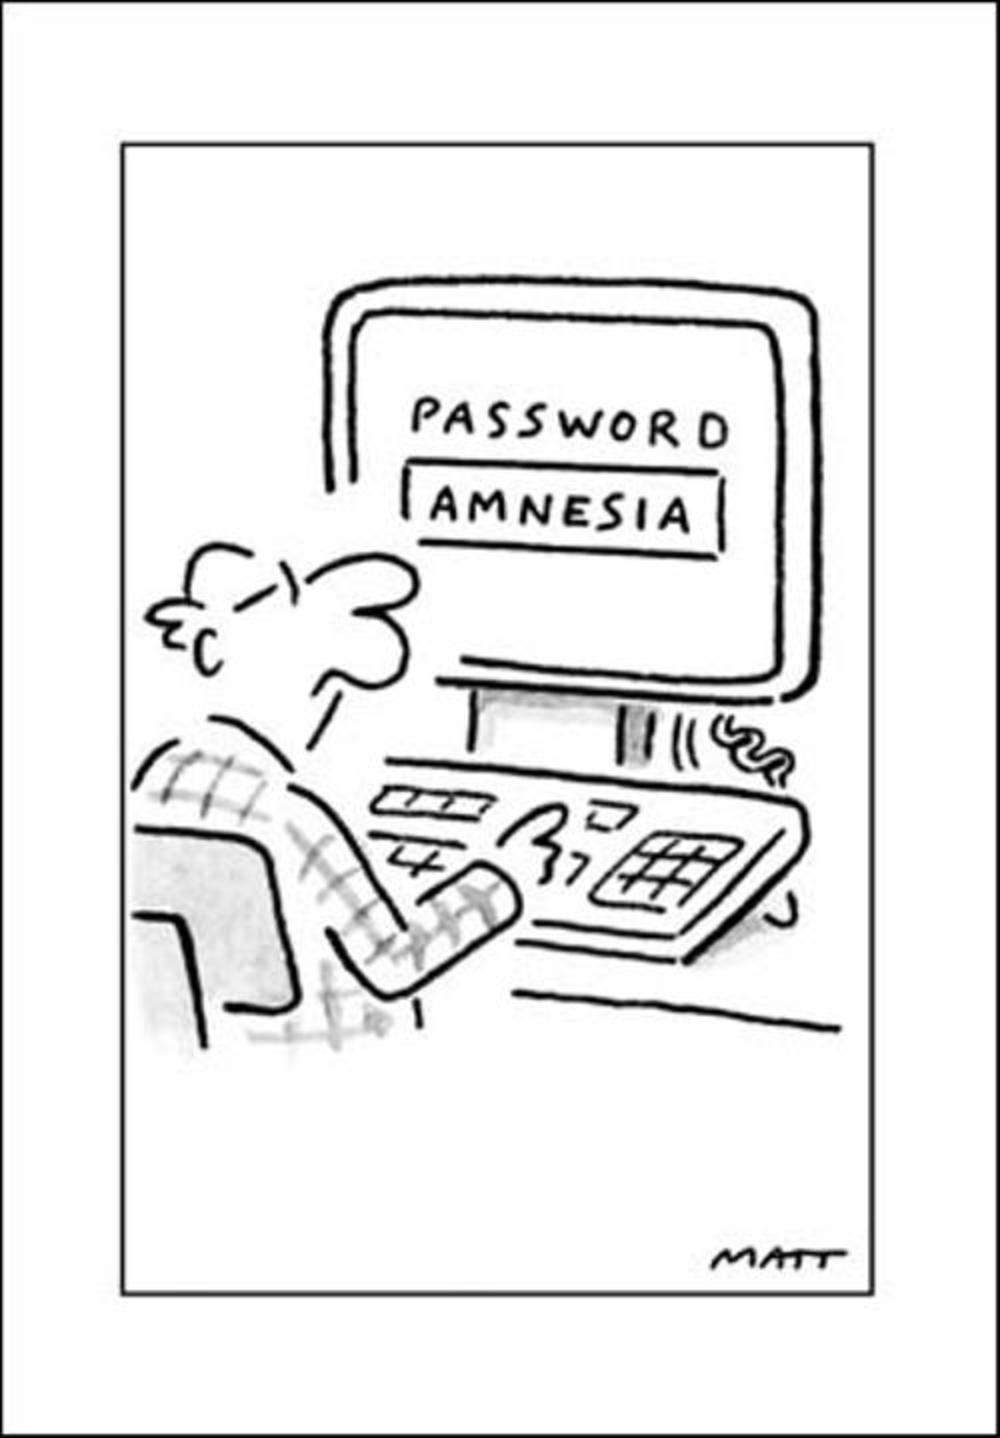 Password Amnesia Funny Matt Greeting Card